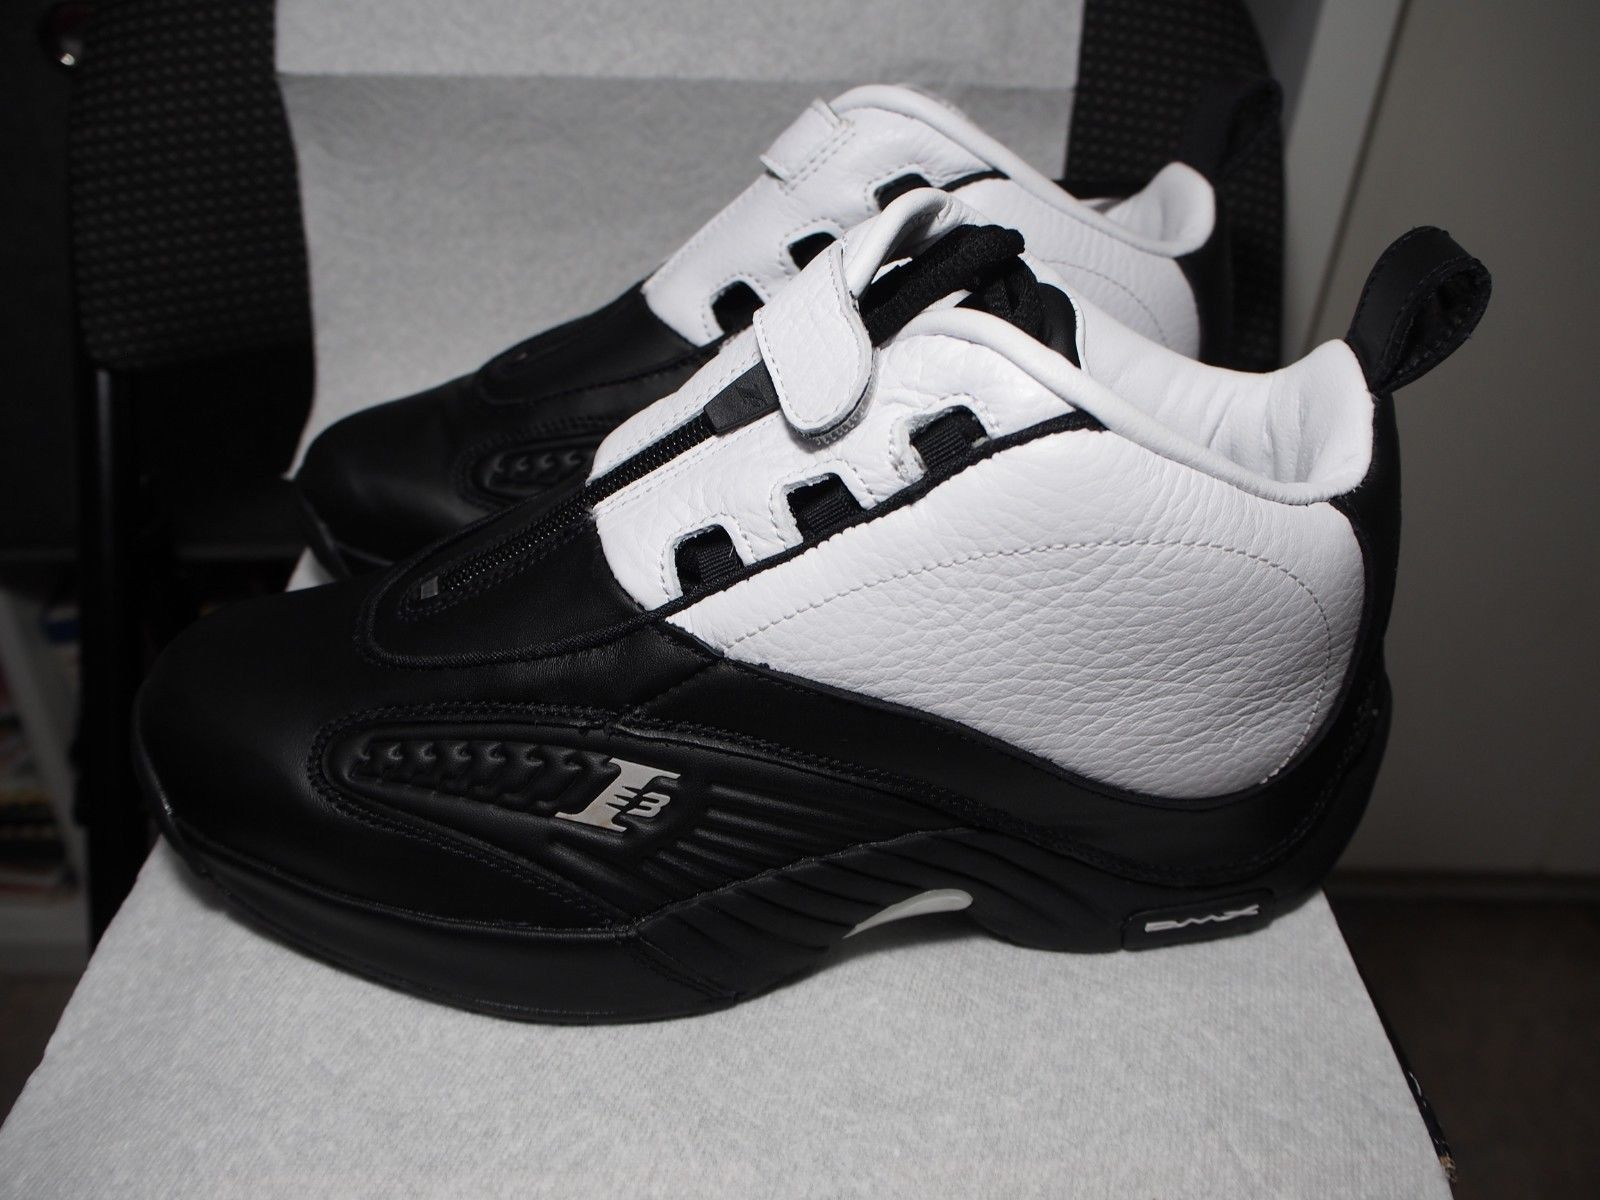 15e24c7de9e Reebok The Answer 4 IV Stepover Allen Iverson Size 8 BLACK WHITE V55619